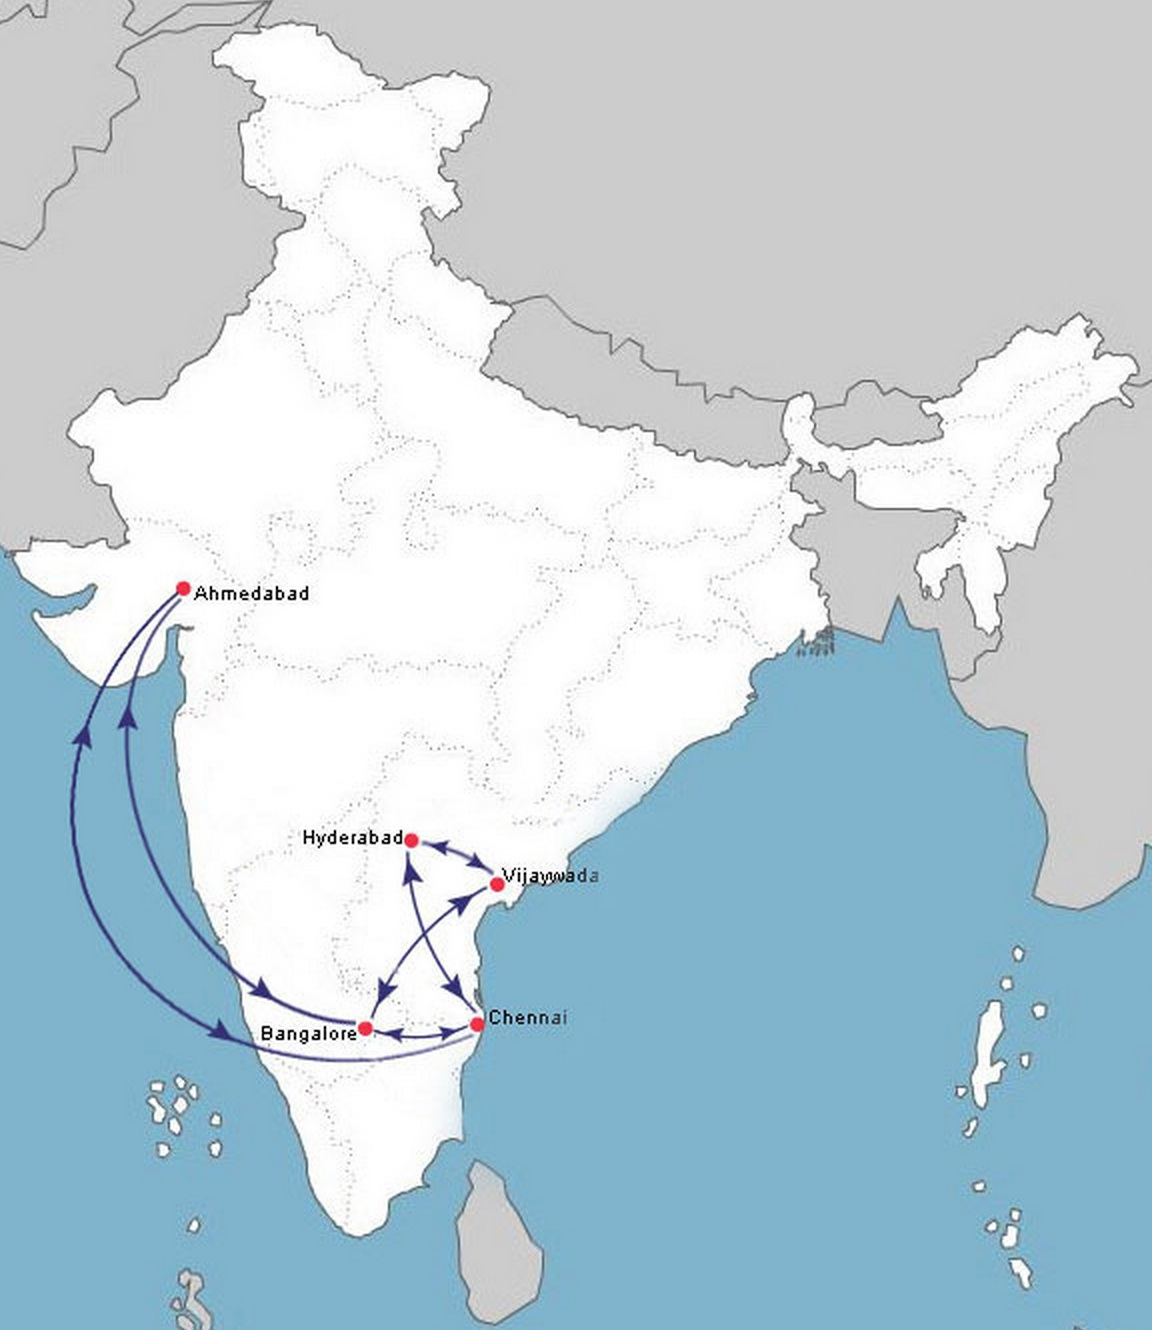 Air Route Map of India Air Costa 10:2013 Route Map